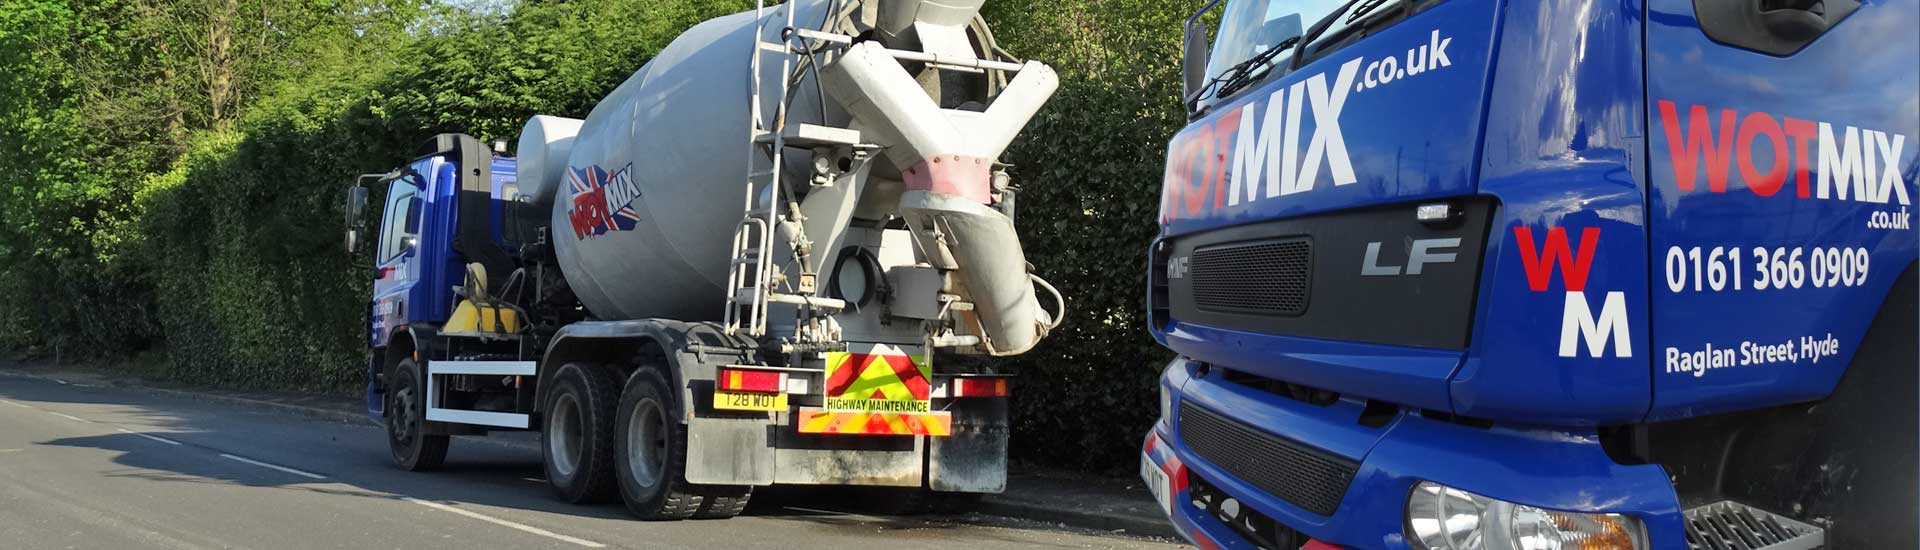 We Deliver Ready Mix Concrete to Knutsford